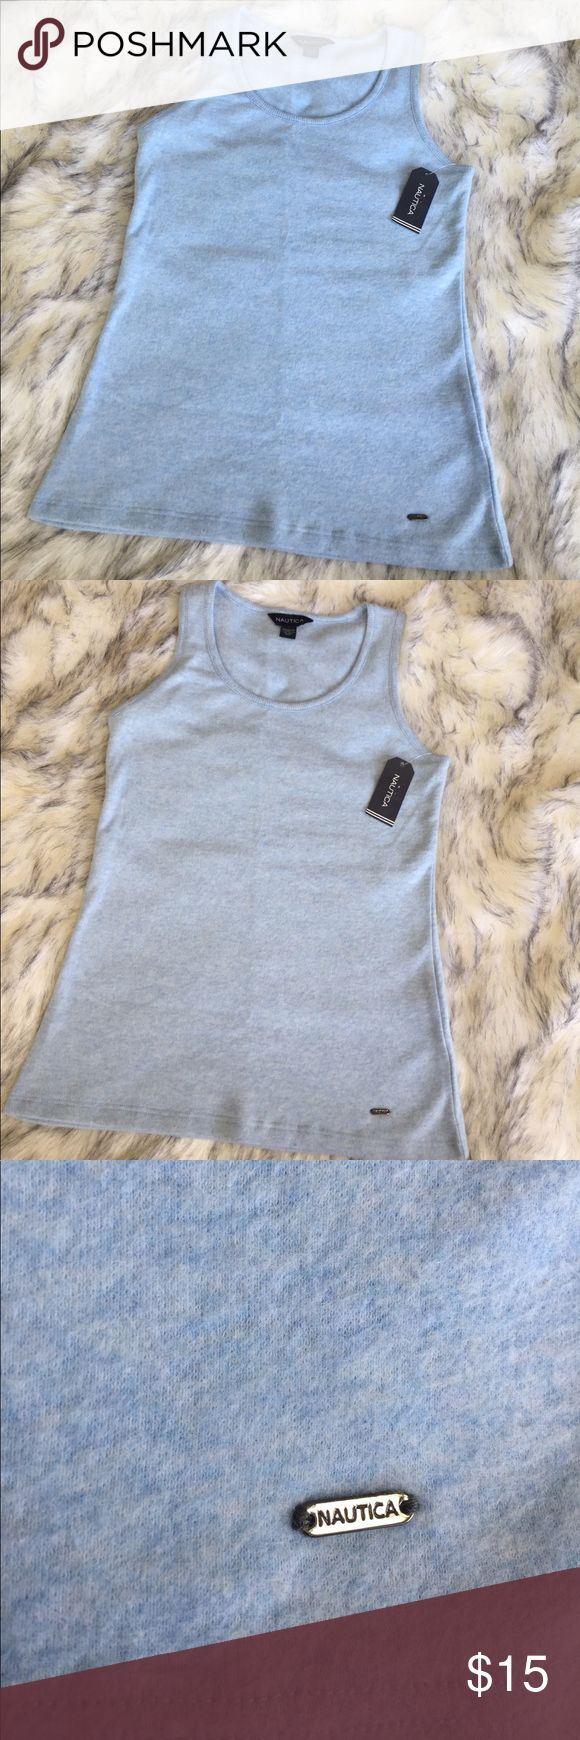 Nautica Tank Top NWT Brand new Tank Top by Nautica! Beautiful light blue color & made with very soft material. The size says XS but it looks more like a small & FYI this is not tight fighting! Nautica Tops Tank Tops